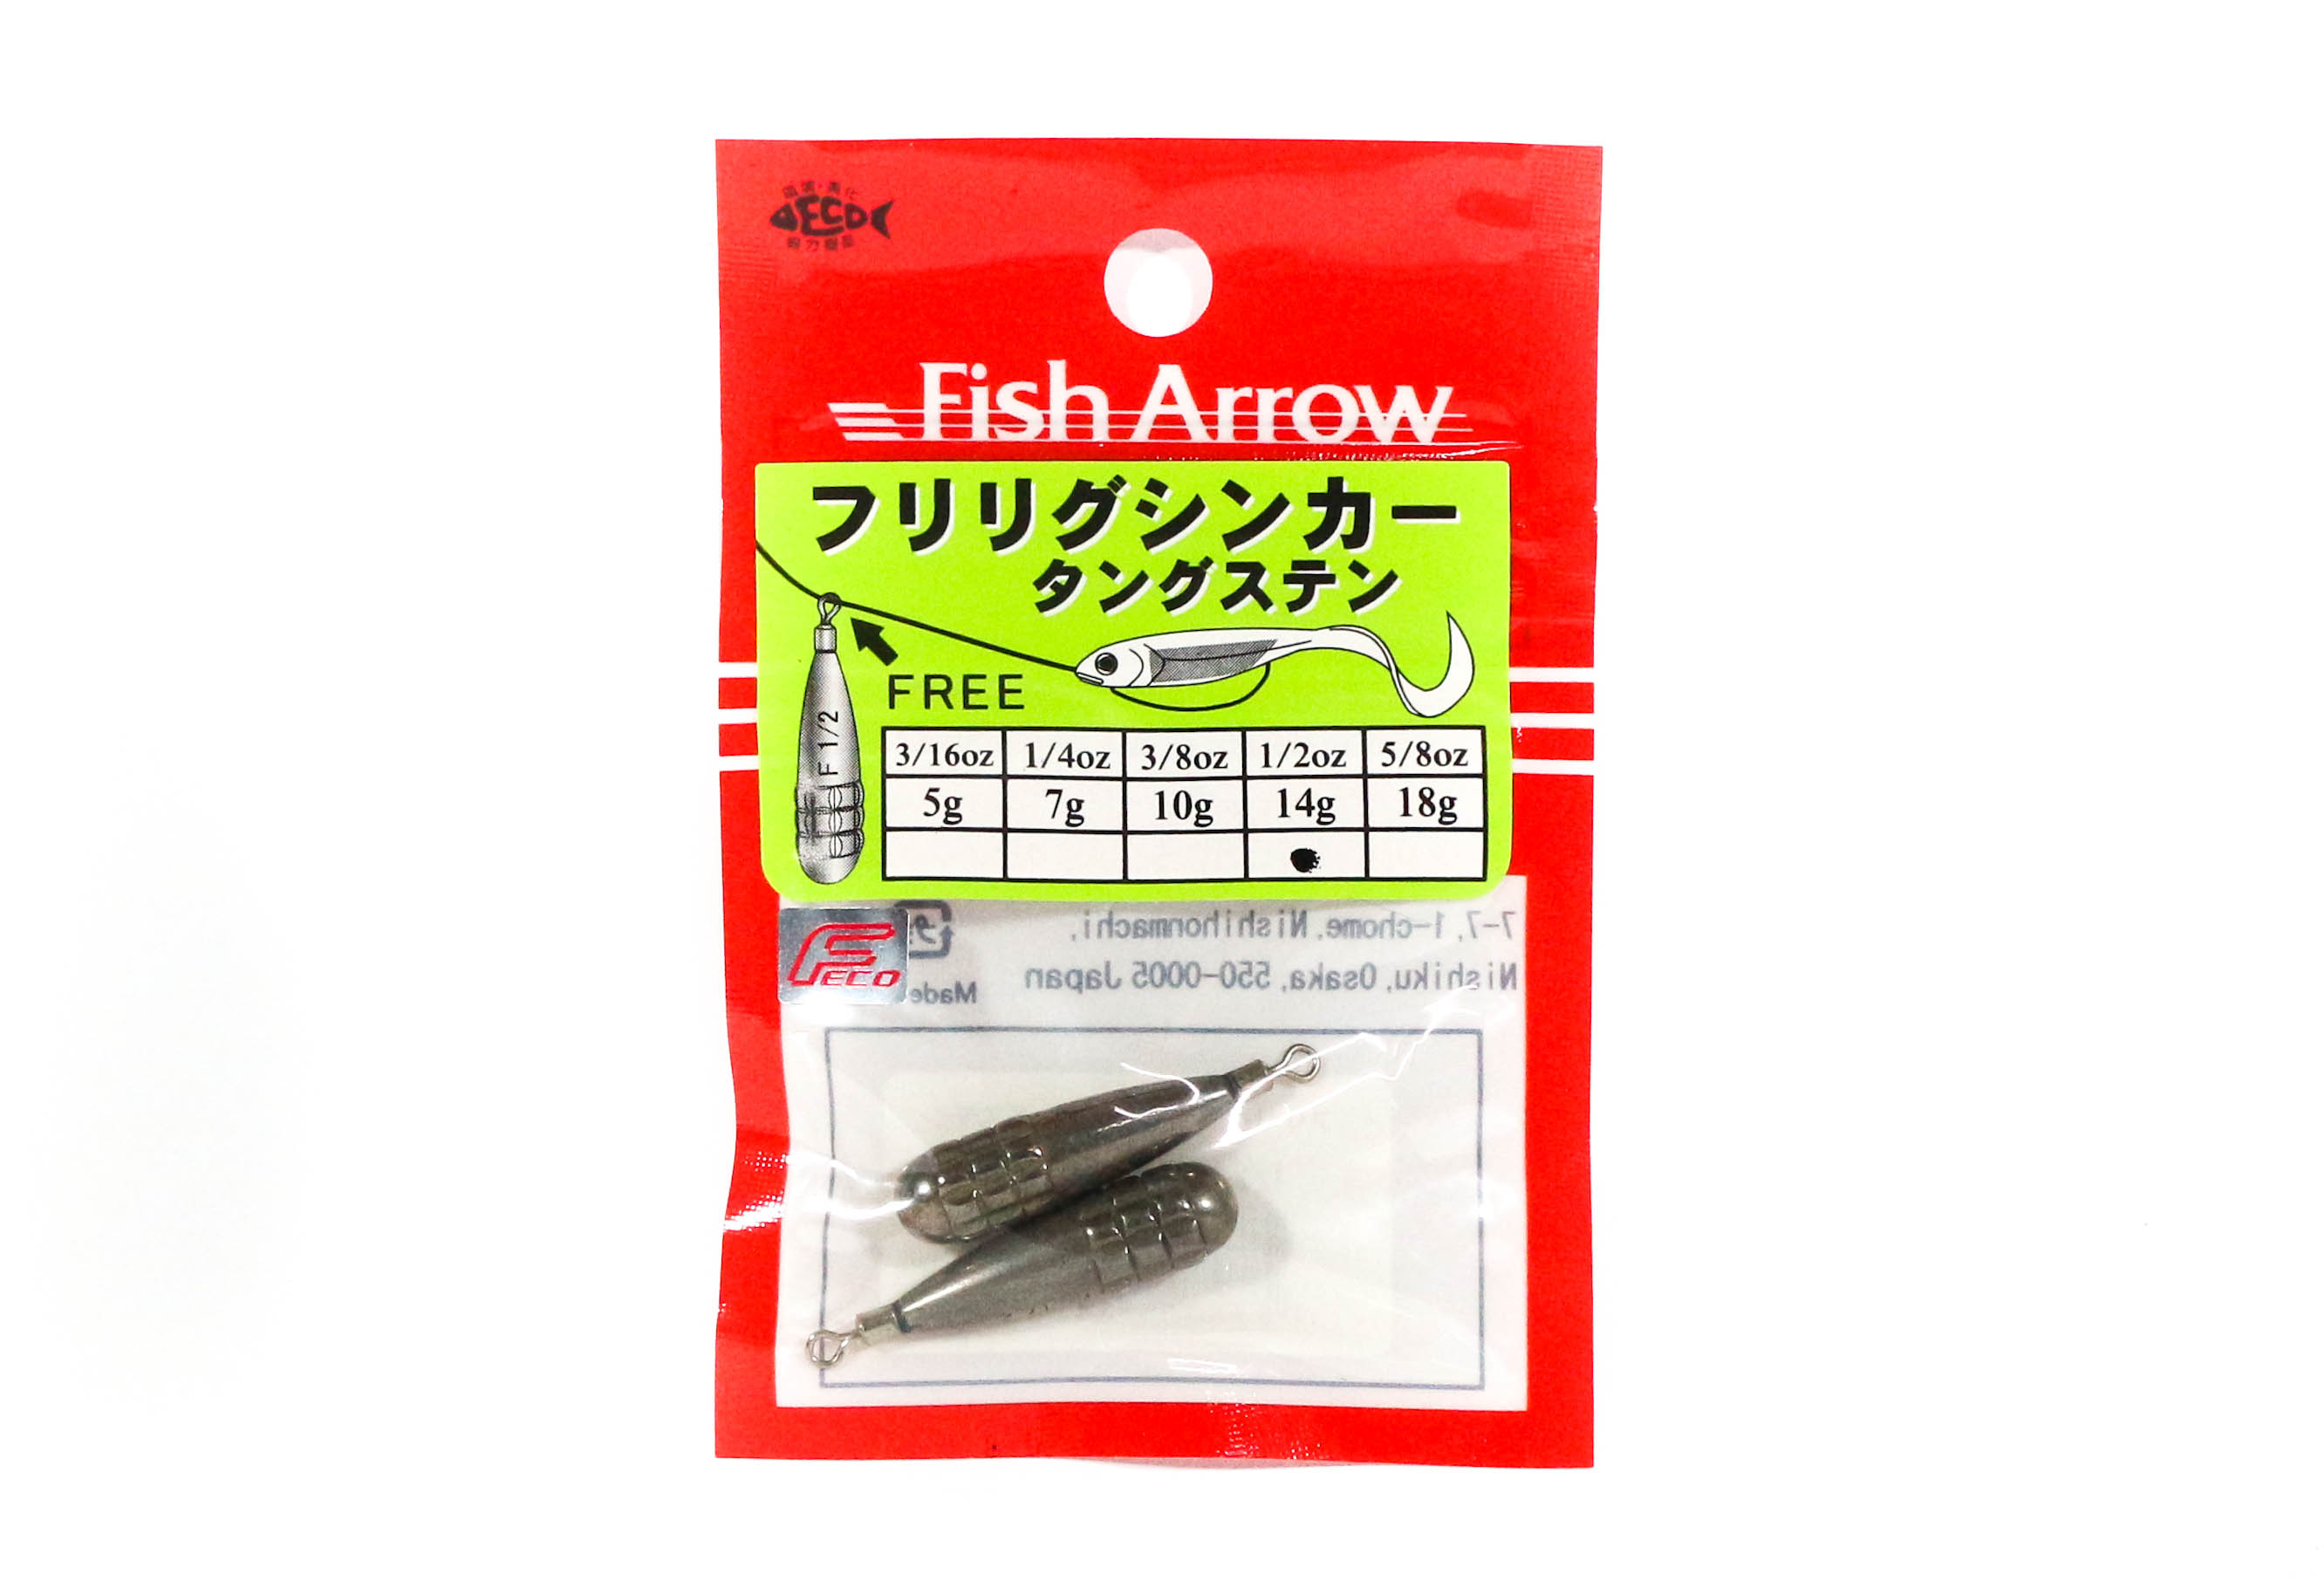 Fish Arrow Free Rig Tungster Sinker 1/2 oz 2 pieces per pack (2084)